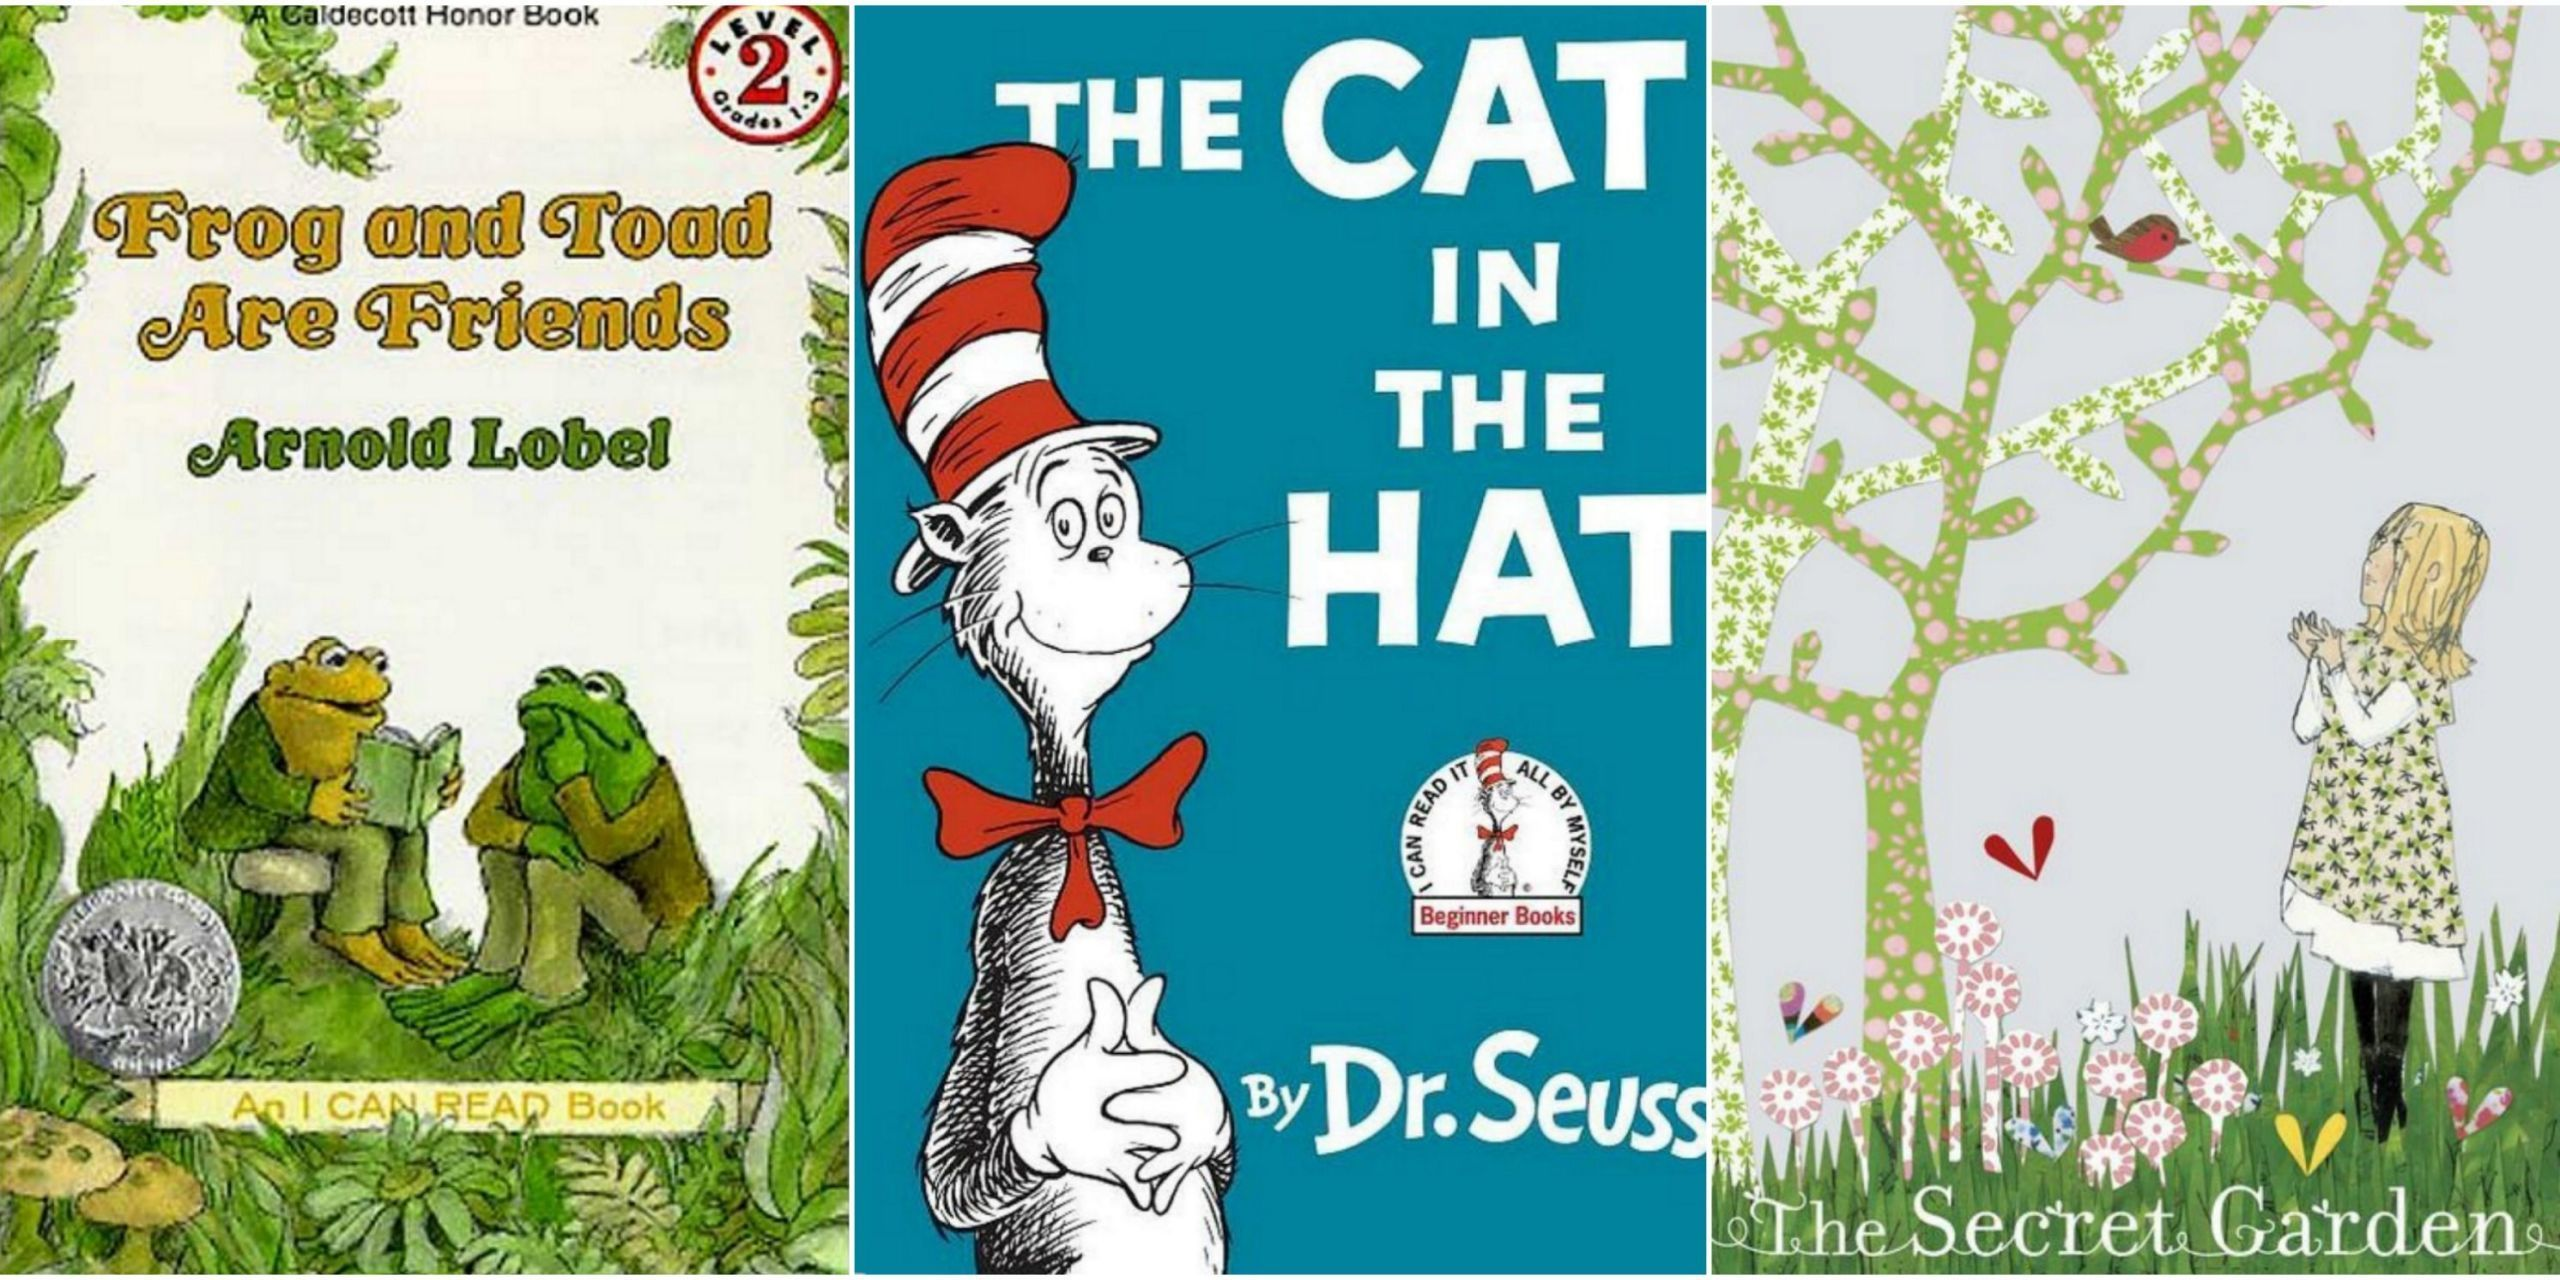 The 50 Children's Books That Should Be in Every Family Library